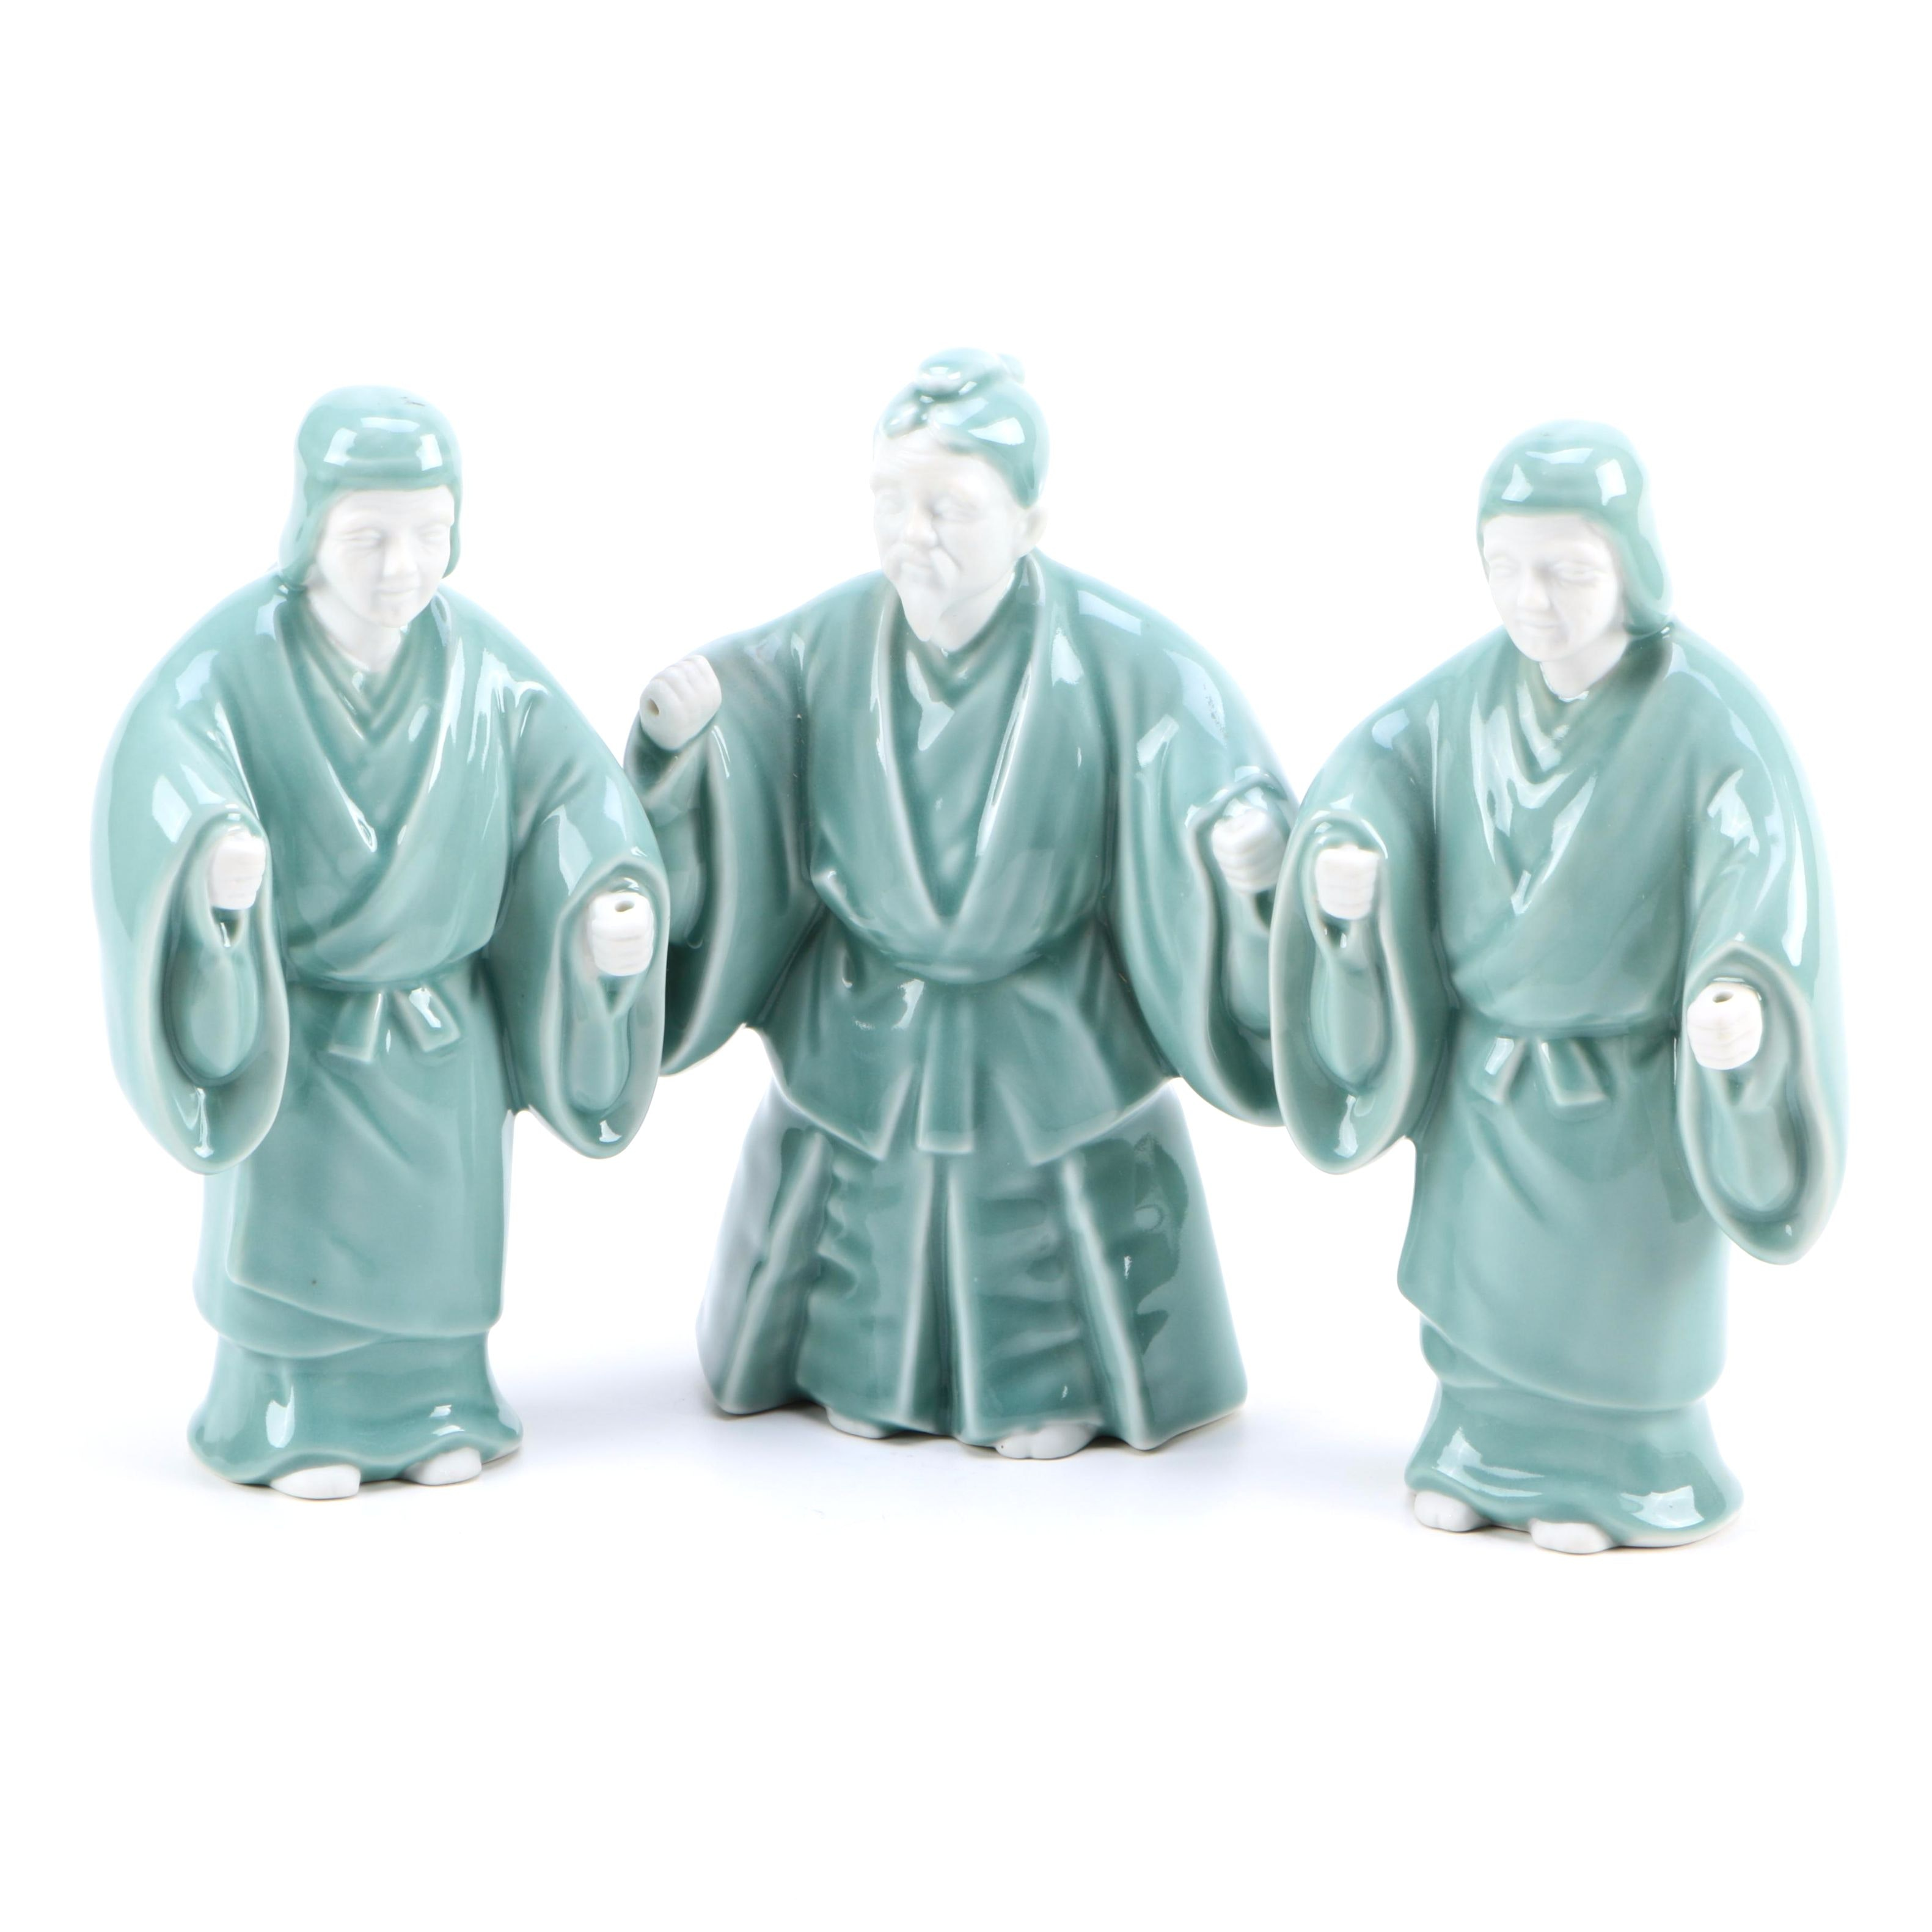 Stafford Asian Inspired Porcelain Figurines